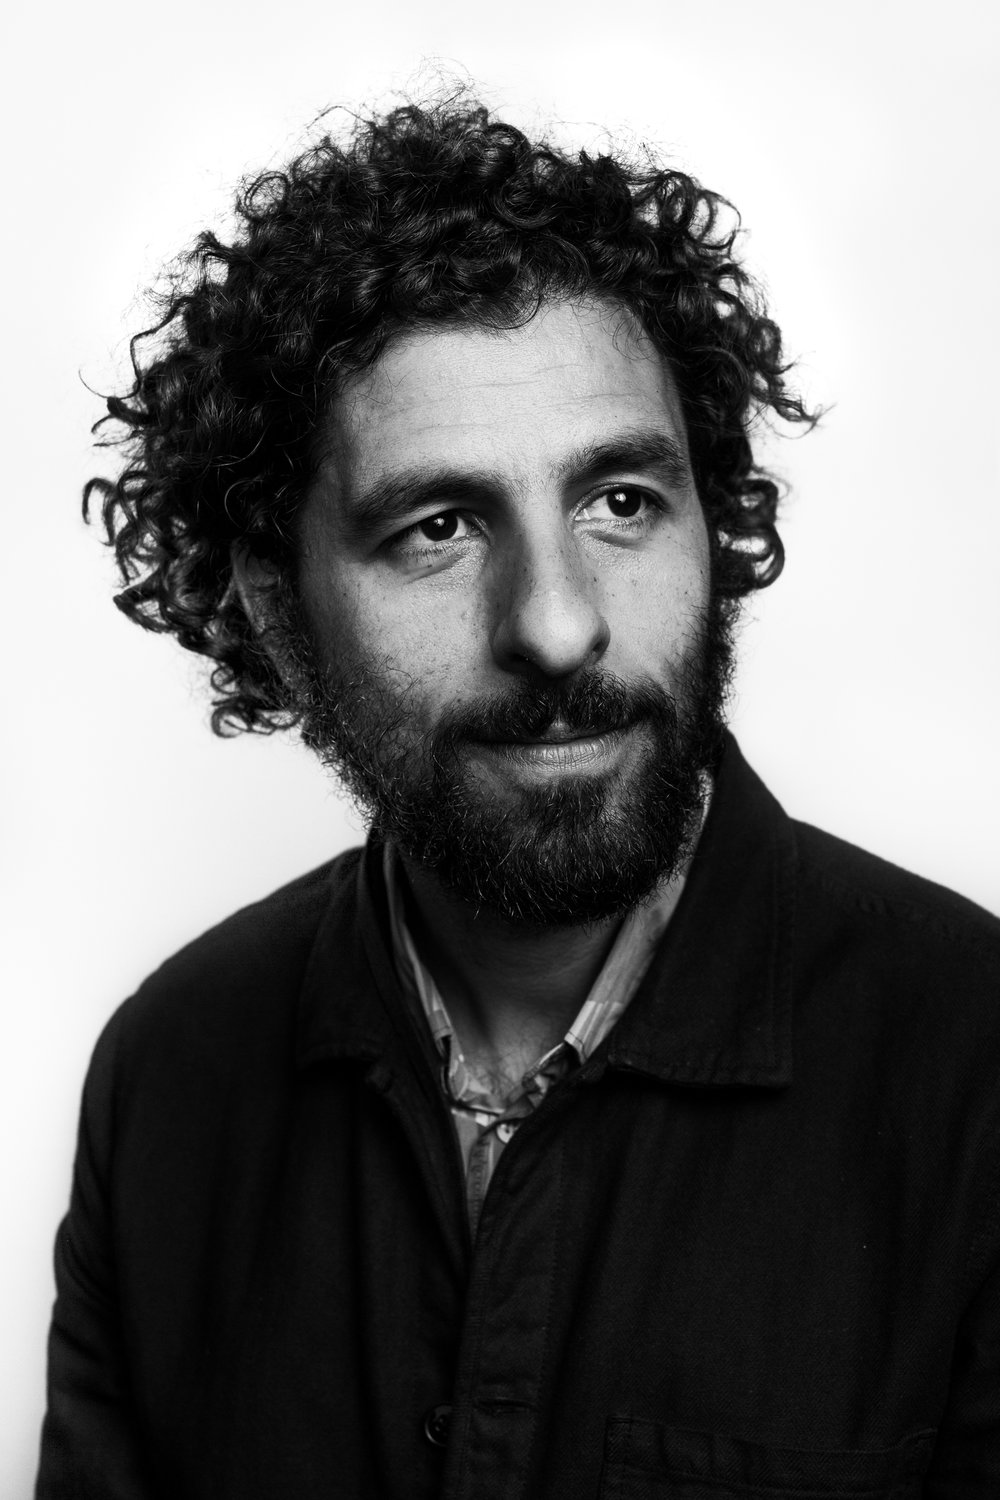 Thomas'  Folk Festival Portraits  - Shown here: Jose Gonzalez and Dallas Green